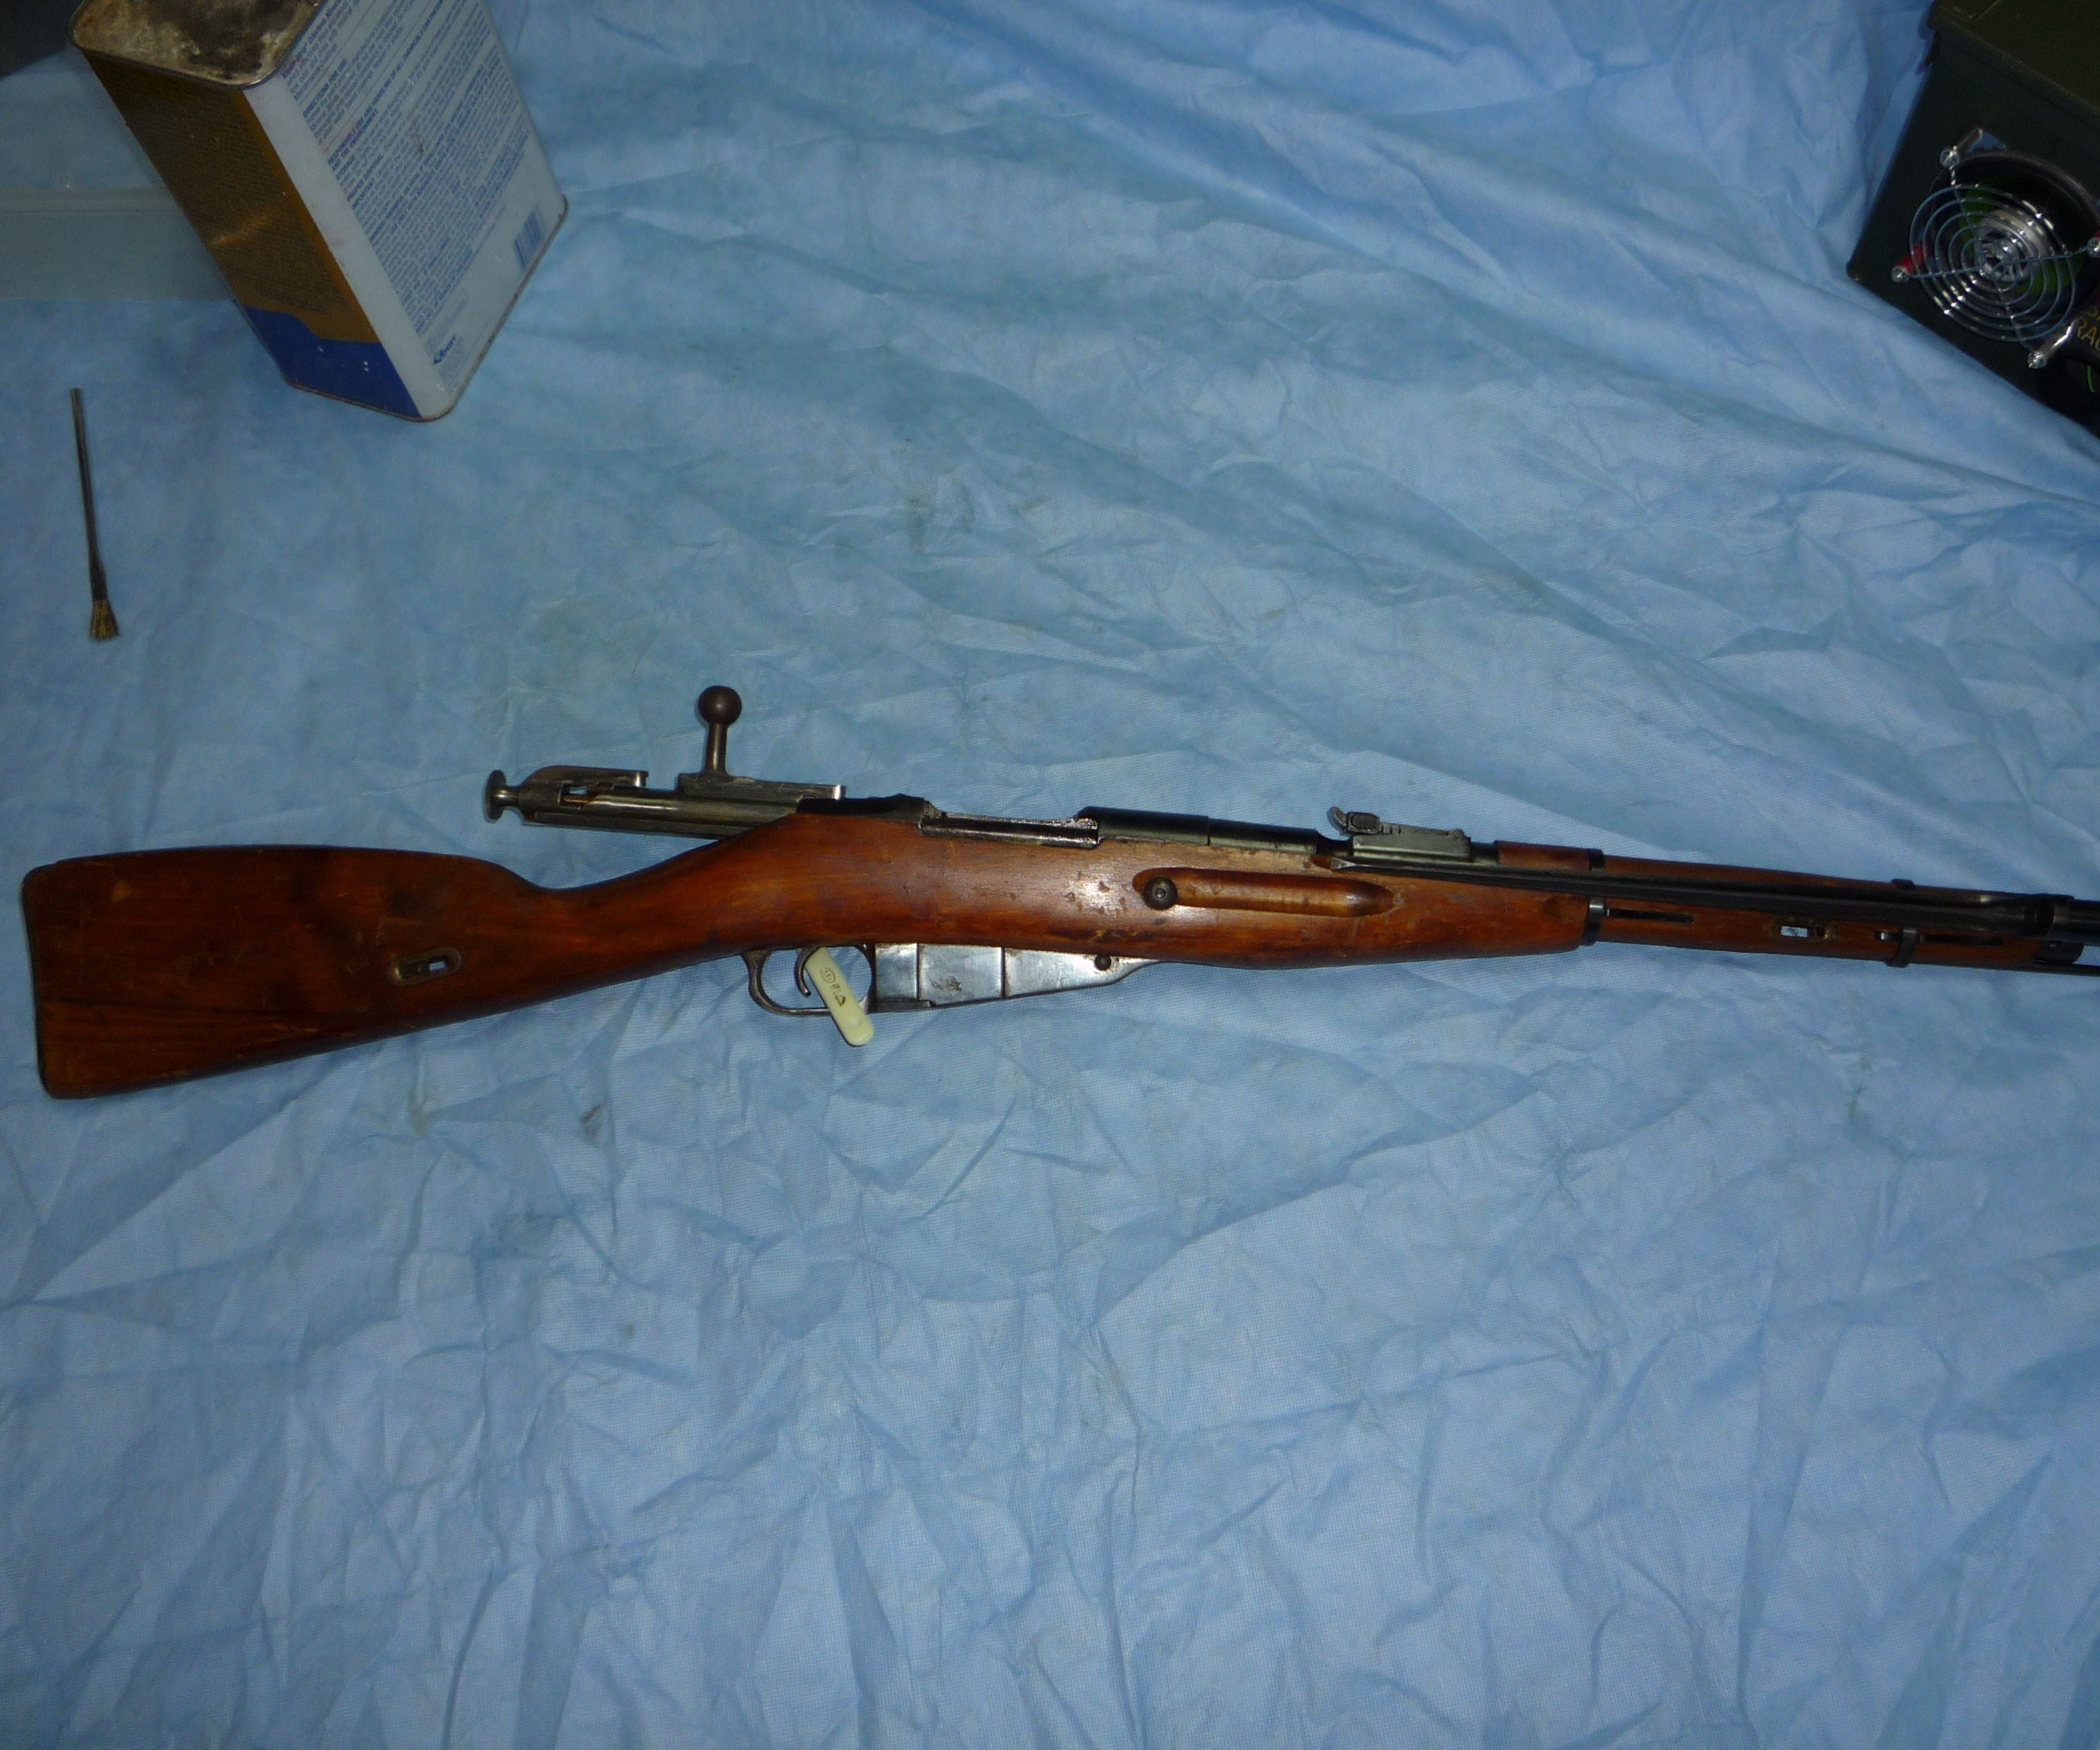 Cleaning Your New Mosin Nagant Rifle Modding The Bolt To Close Easily 17 Steps Instructables